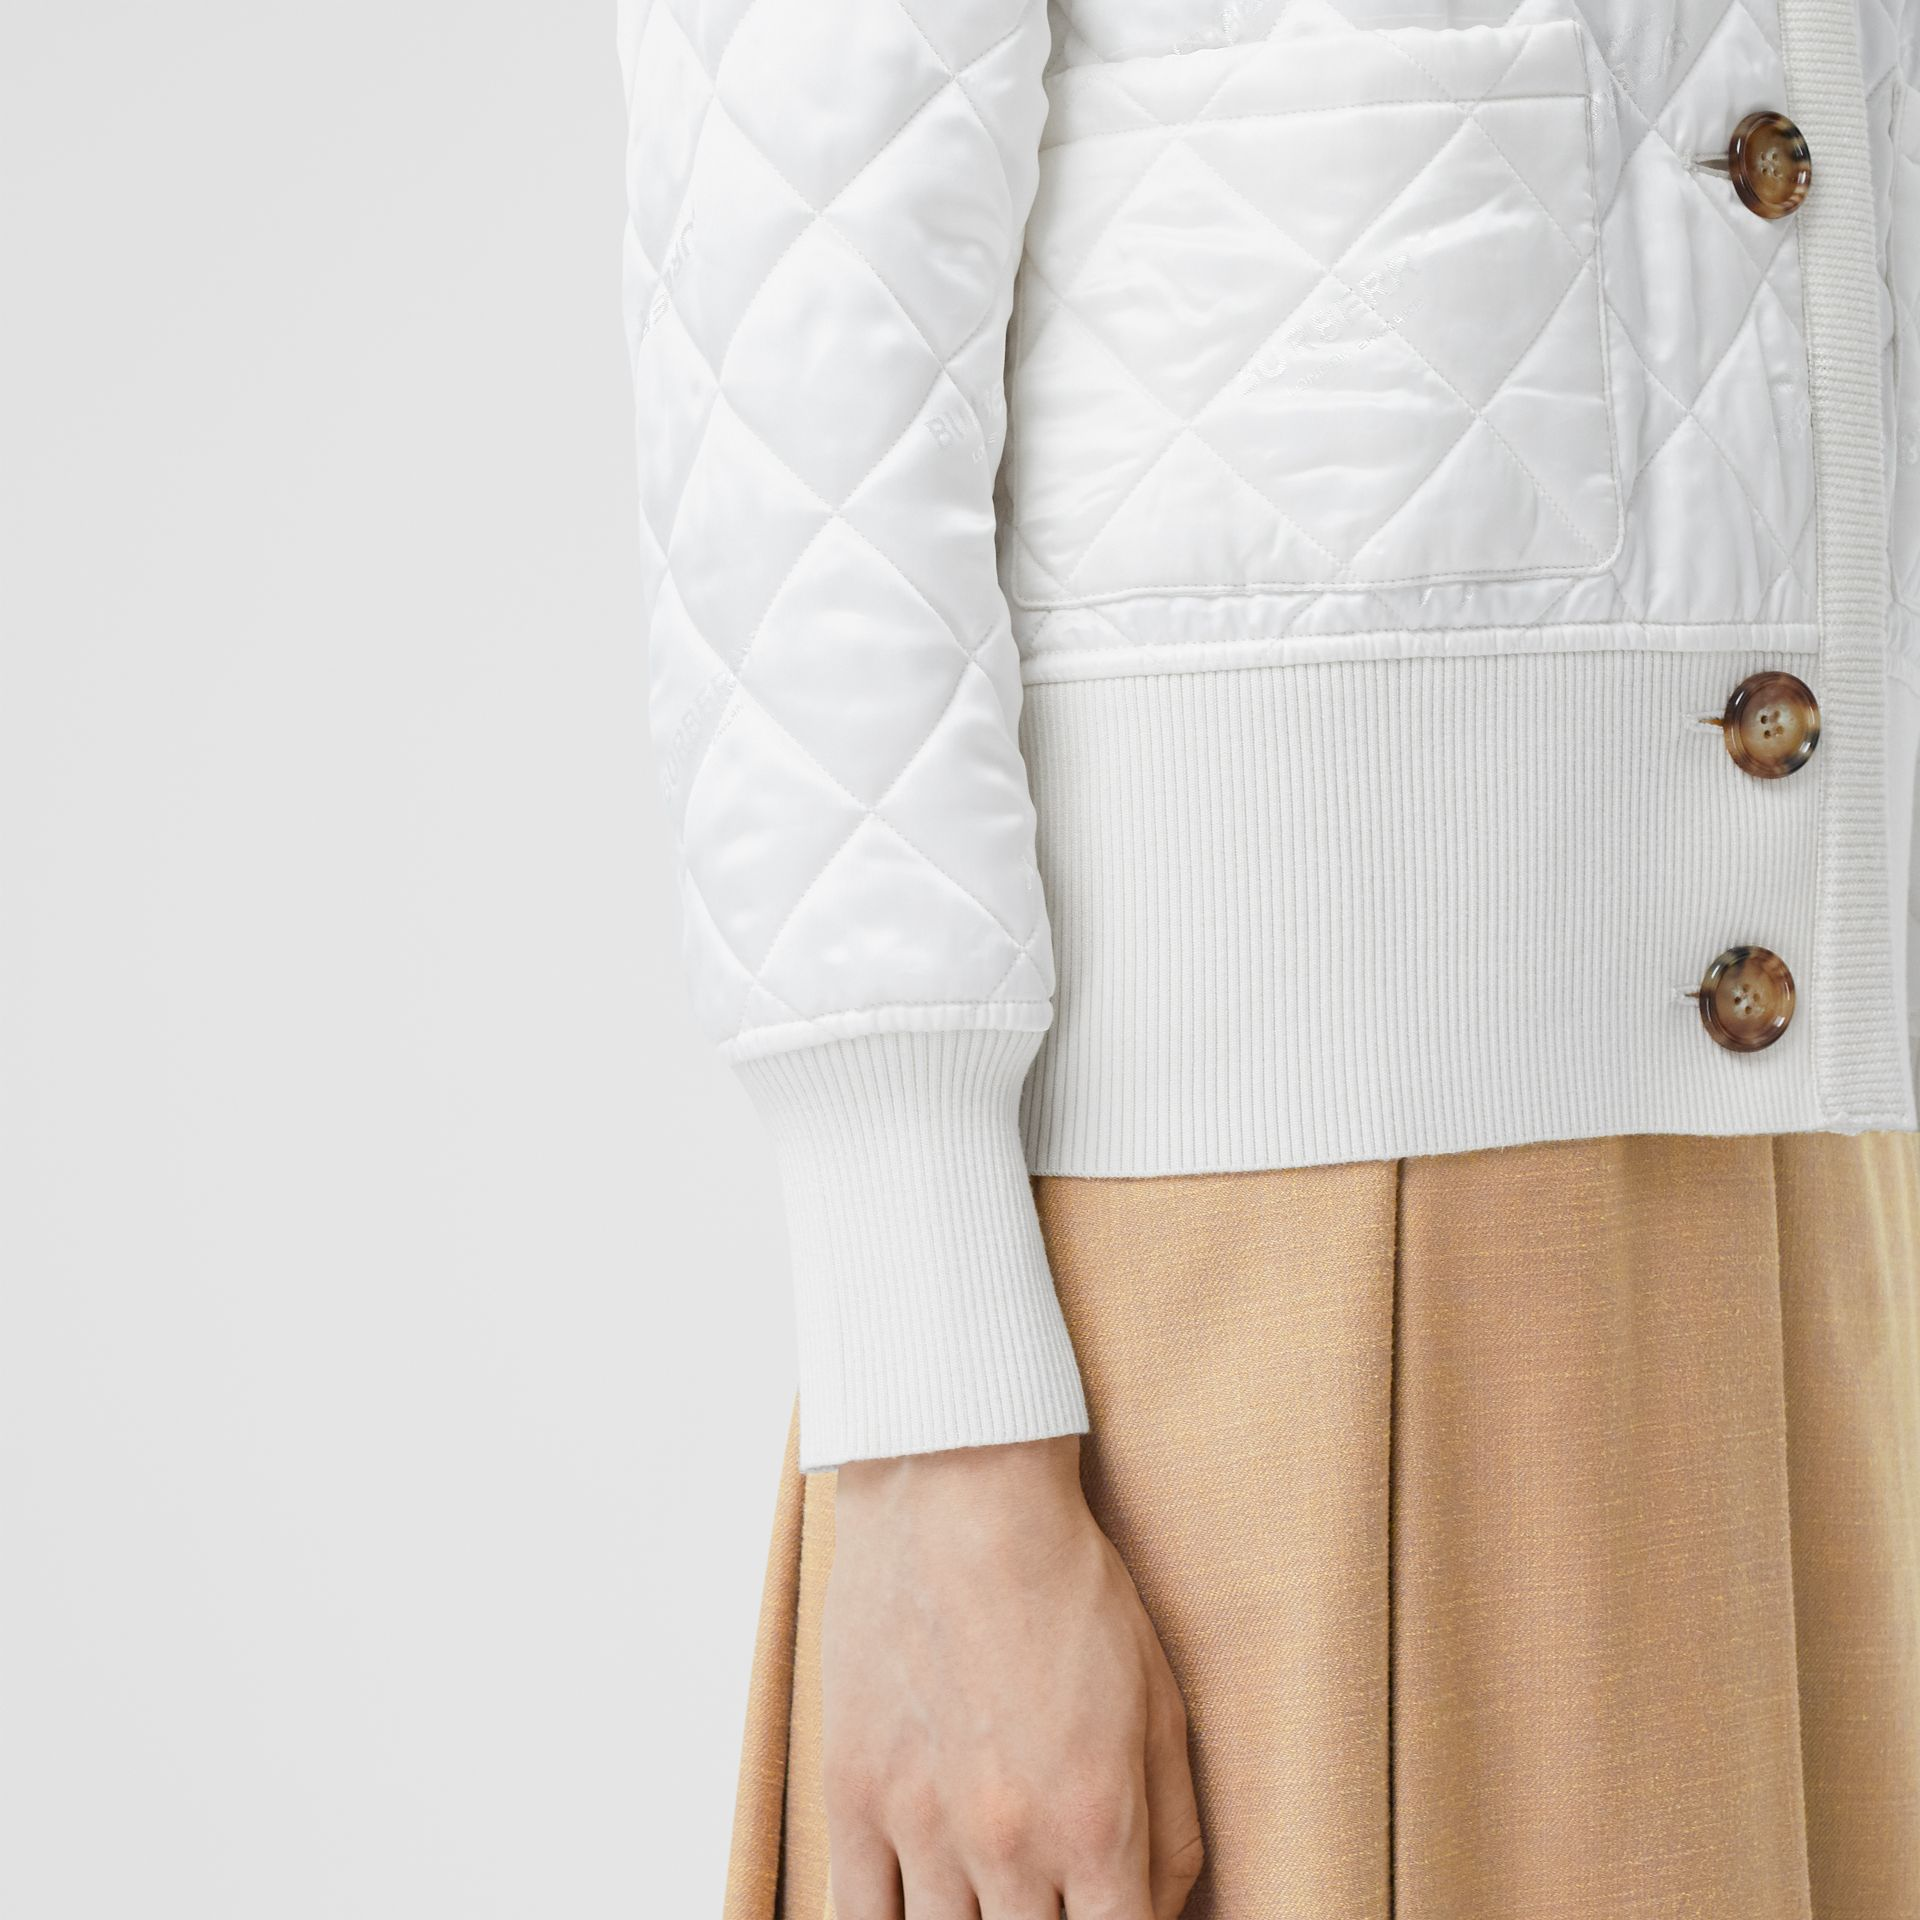 Logo Jacquard Diamond Quilted and Wool Blend Jacket in White - Women | Burberry - gallery image 4